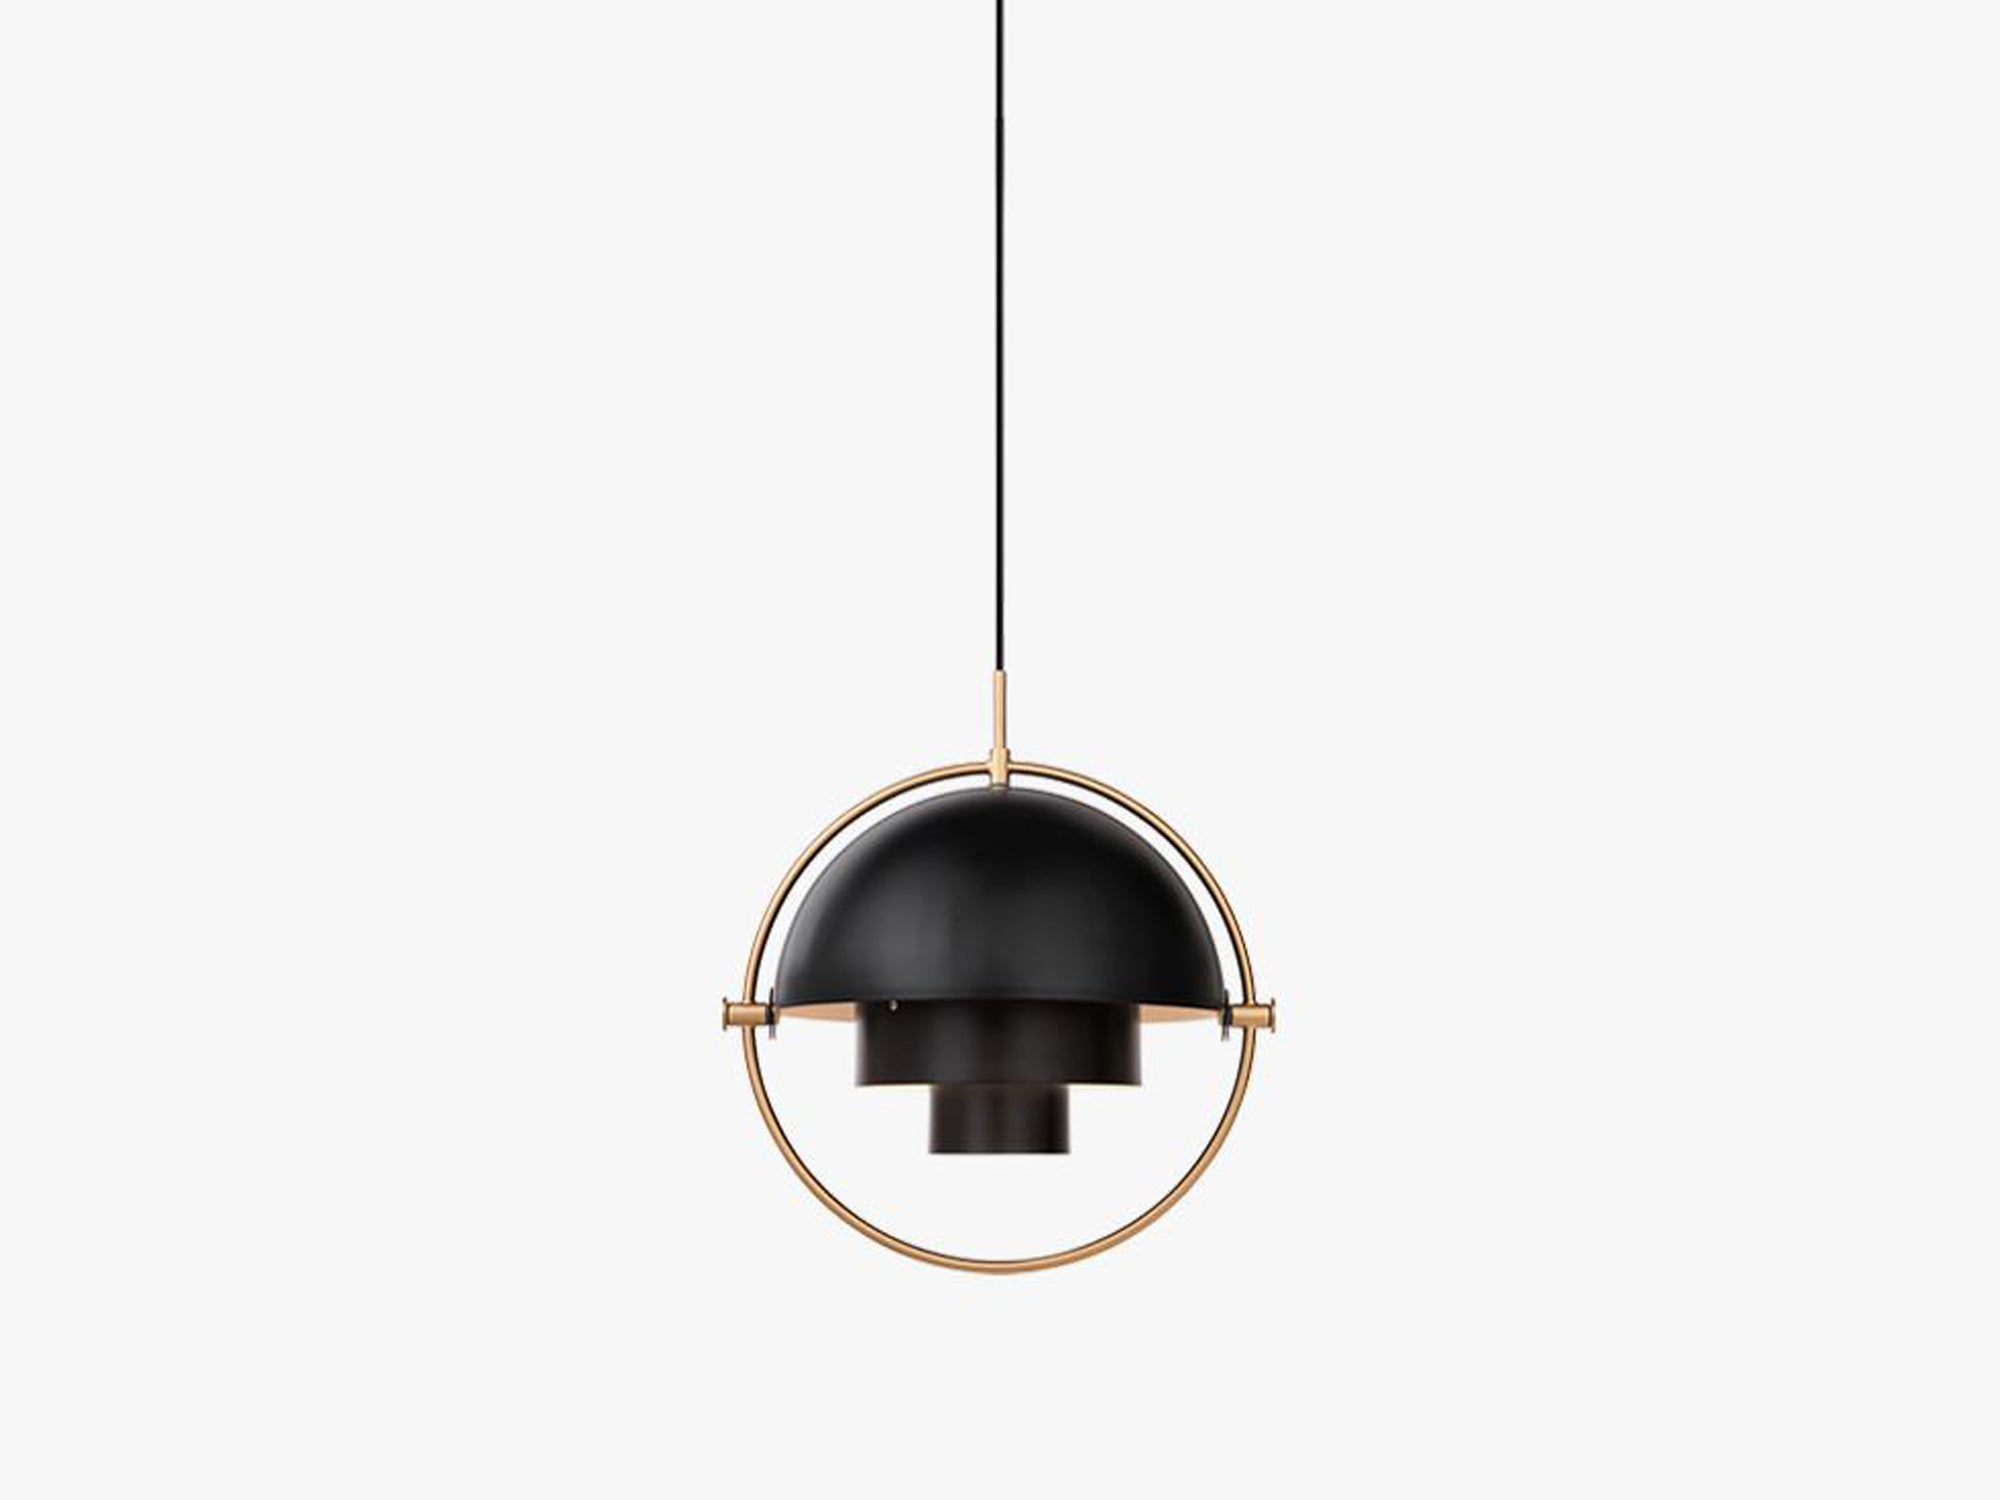 Multi-Lite Pendant - Ø36 - Brass Base, Charcoal Black fra GUBI